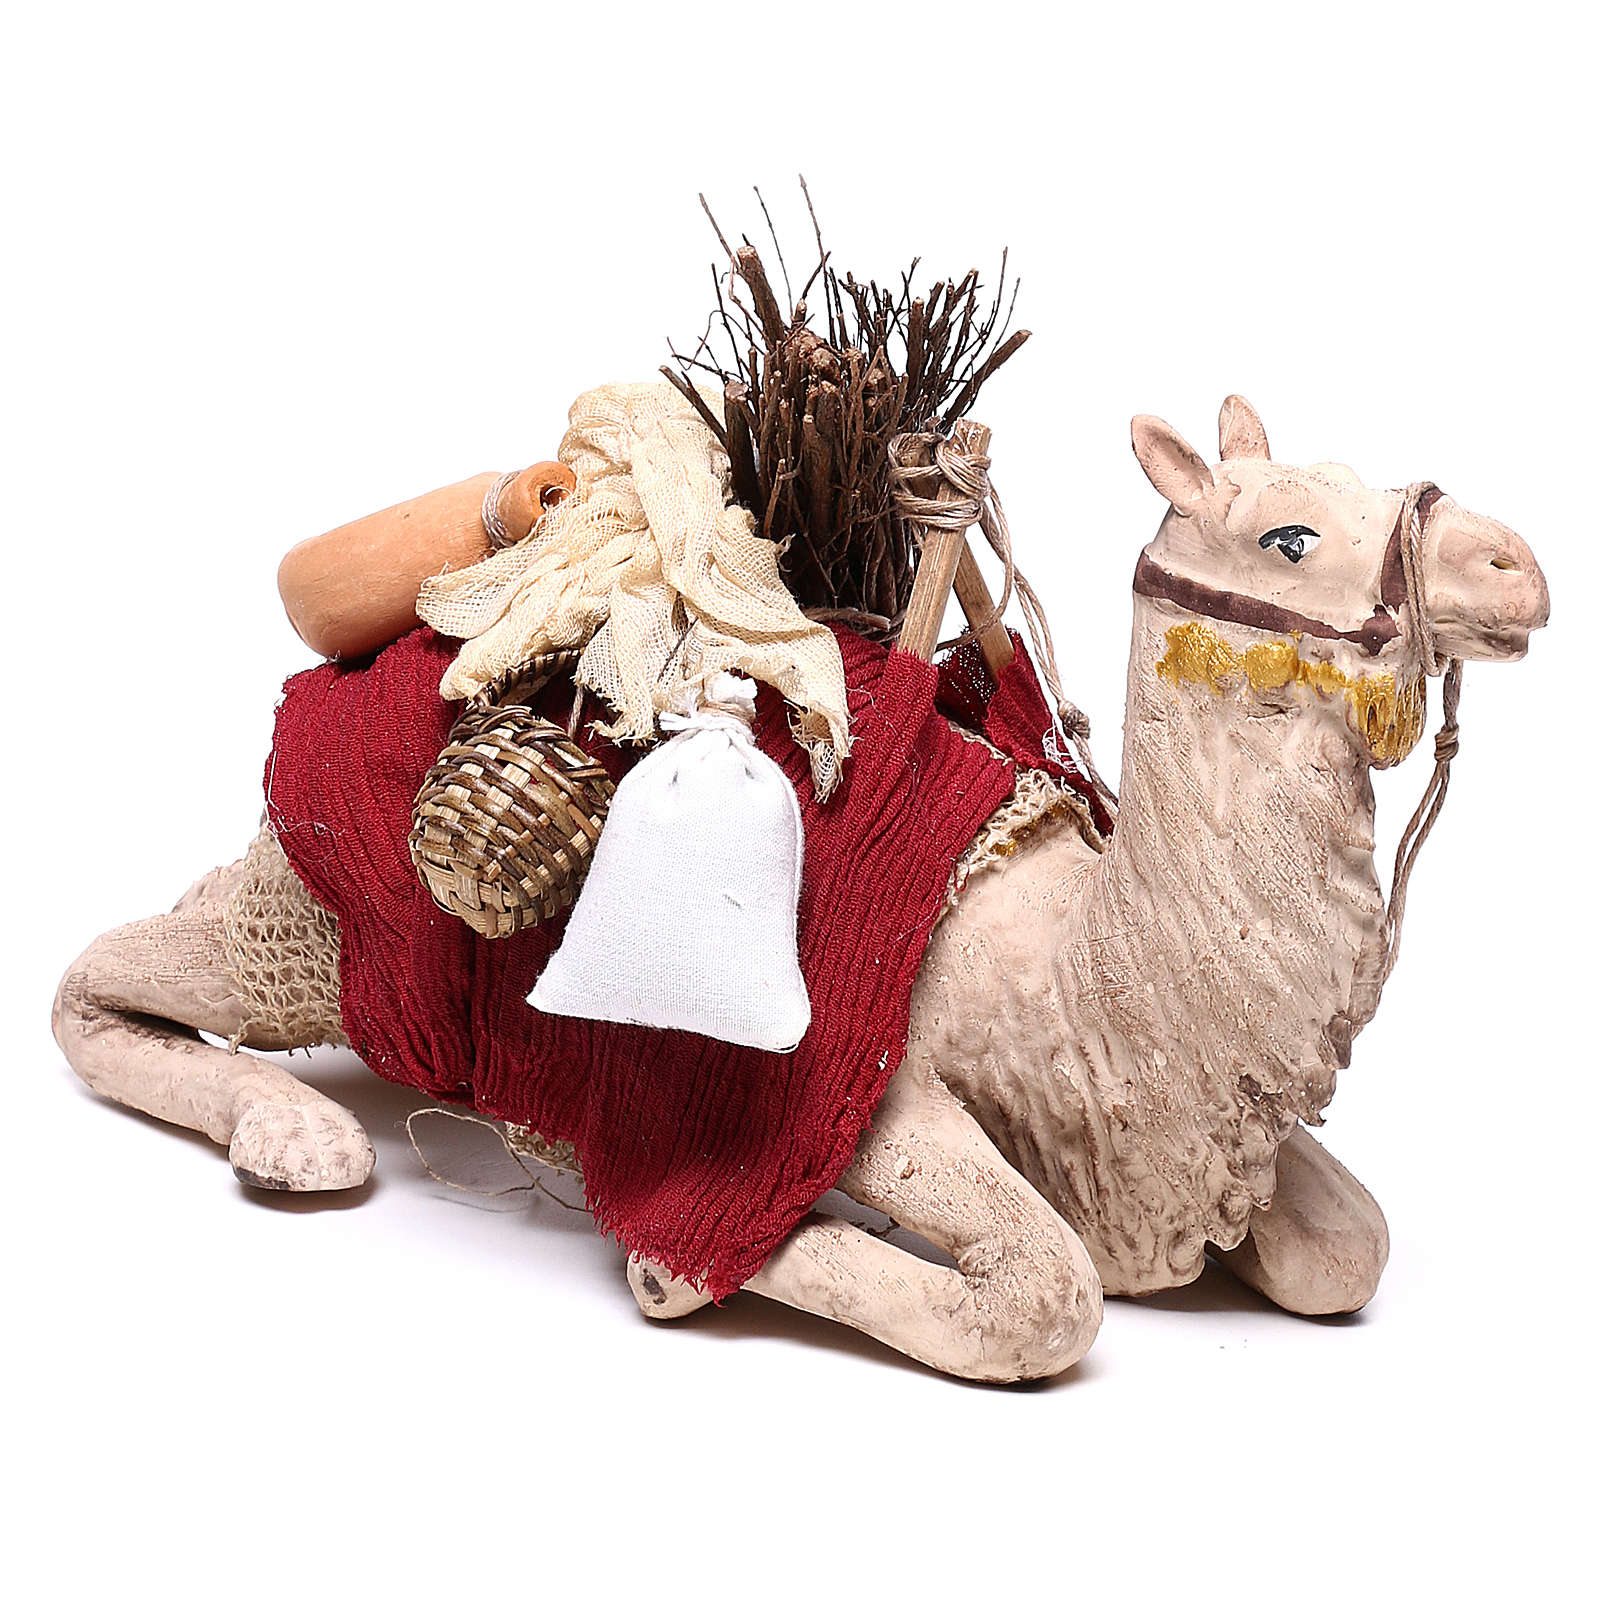 Harnessed sitting camel for Neapolitan nativity 14cm 4